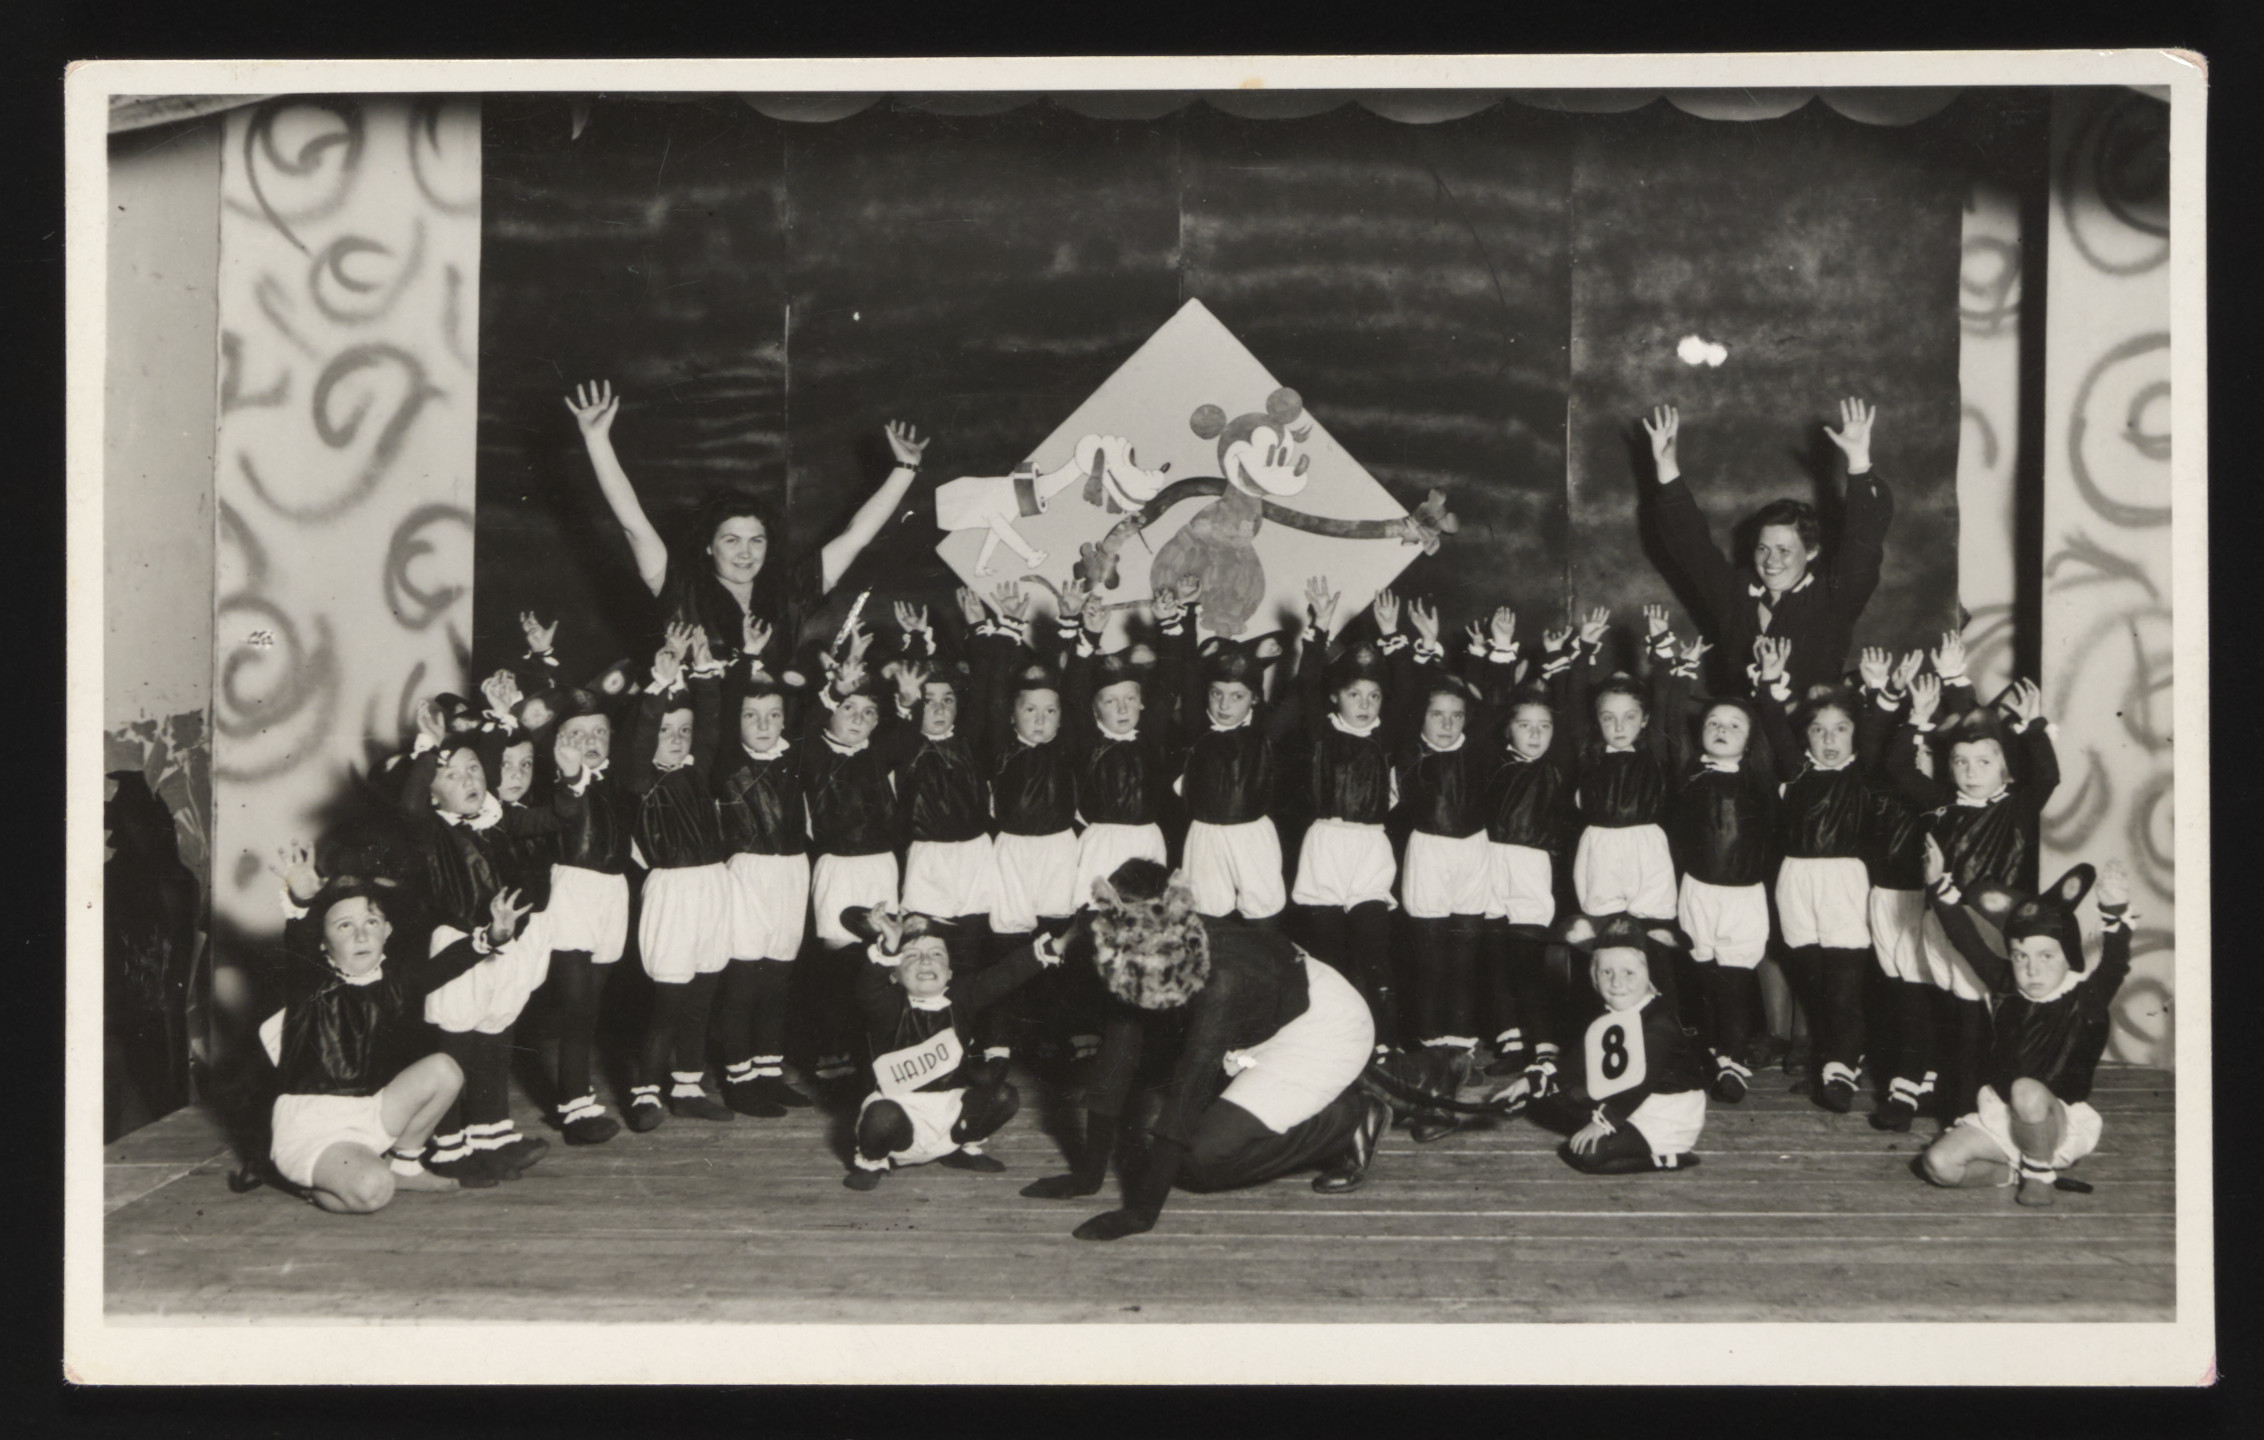 Children dressed as mice put on a school performance at the Novaky labor camp.  Among those pictured, in the second row, sixth from the right, is Mira Frenkel (now Frenkel).